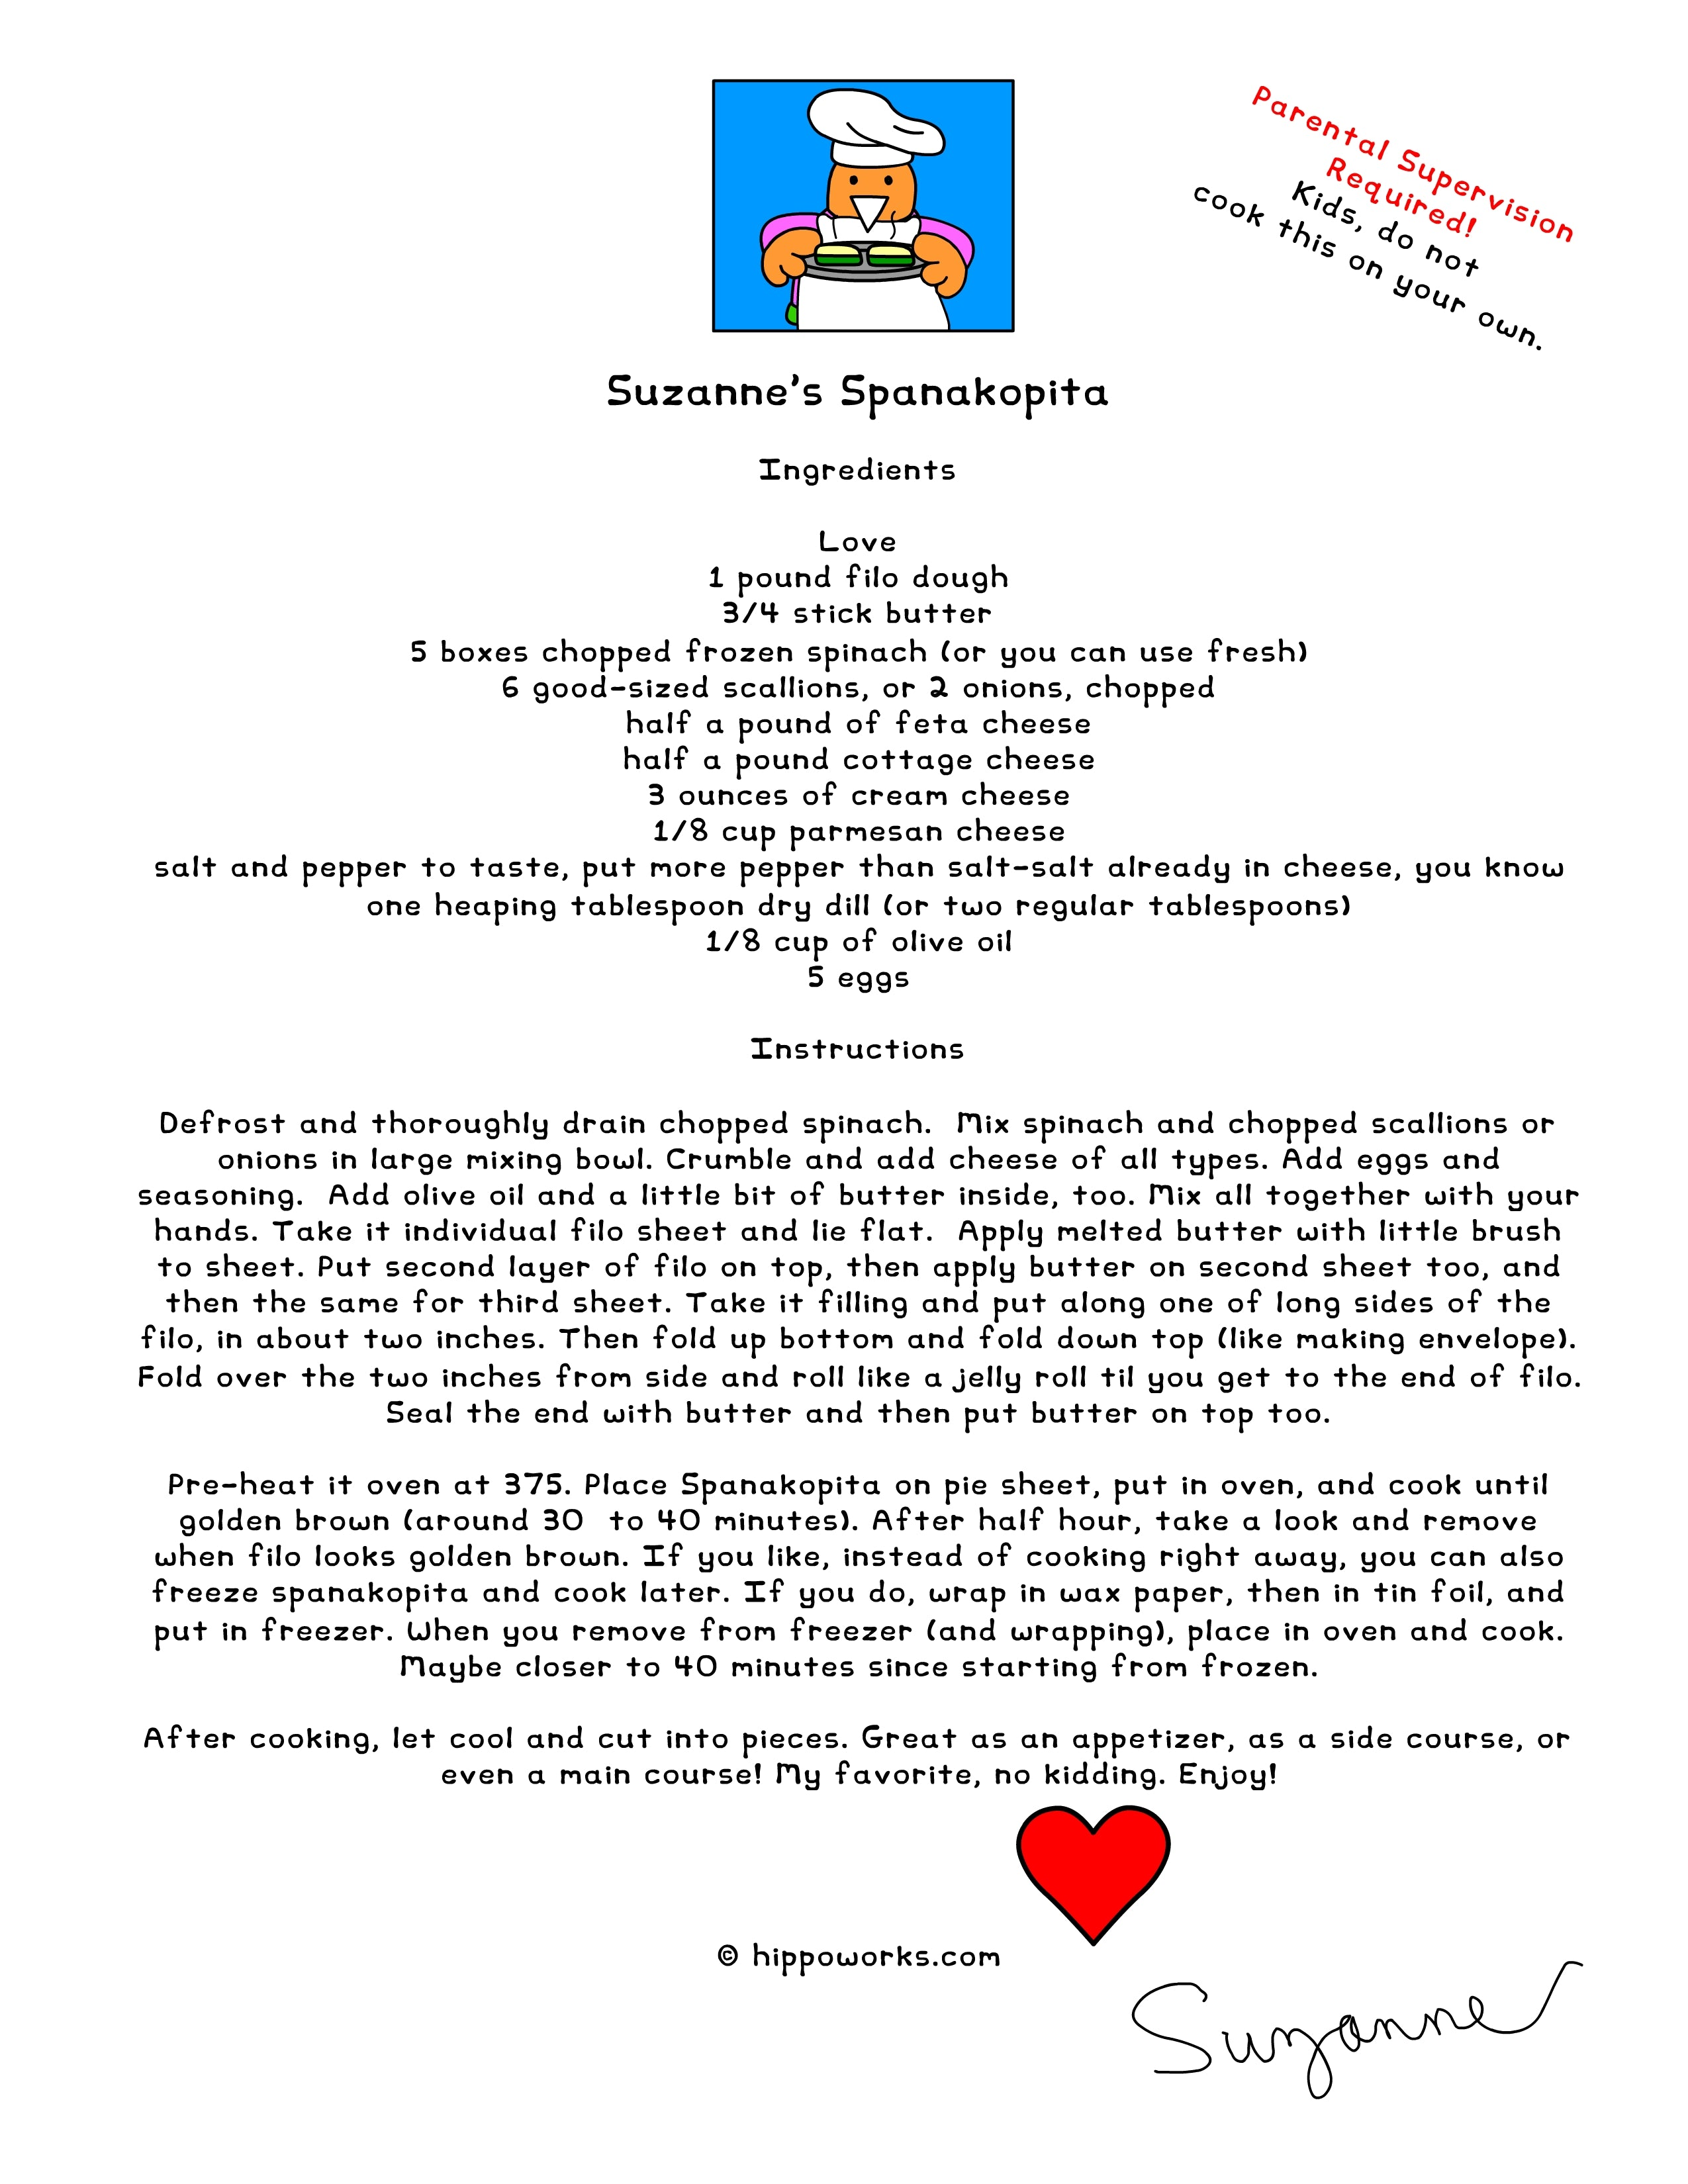 Spanakopita Recipe from Suzanne\'s Kitchen | Hippo Works, It\'s a ...